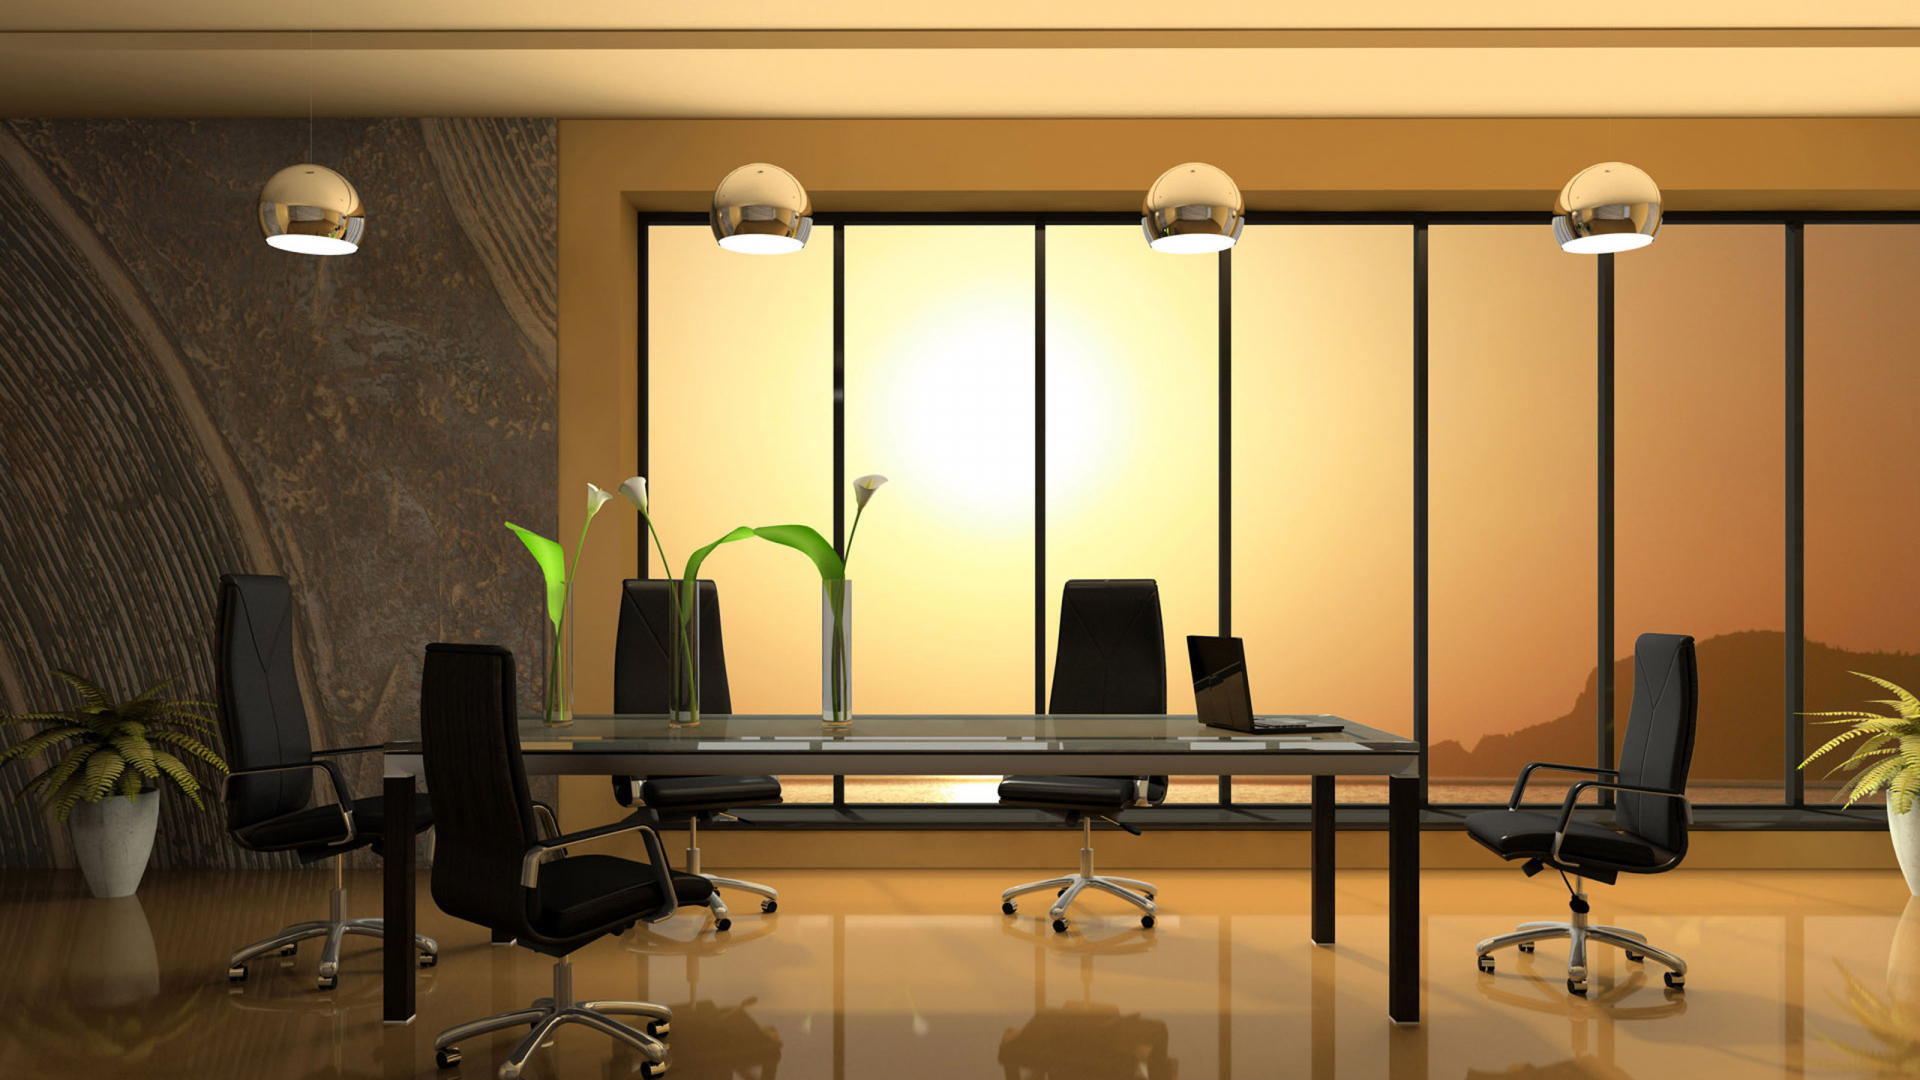 Free Download Rent Office Space Virtual Offices Meeting Conference Rooms 2560x1600 For Your Desktop Mobile Tablet Explore 49 Office Wallpaper Microsoft Wallpapers Download For Free Microsoft Wallpaper Downloads Bing